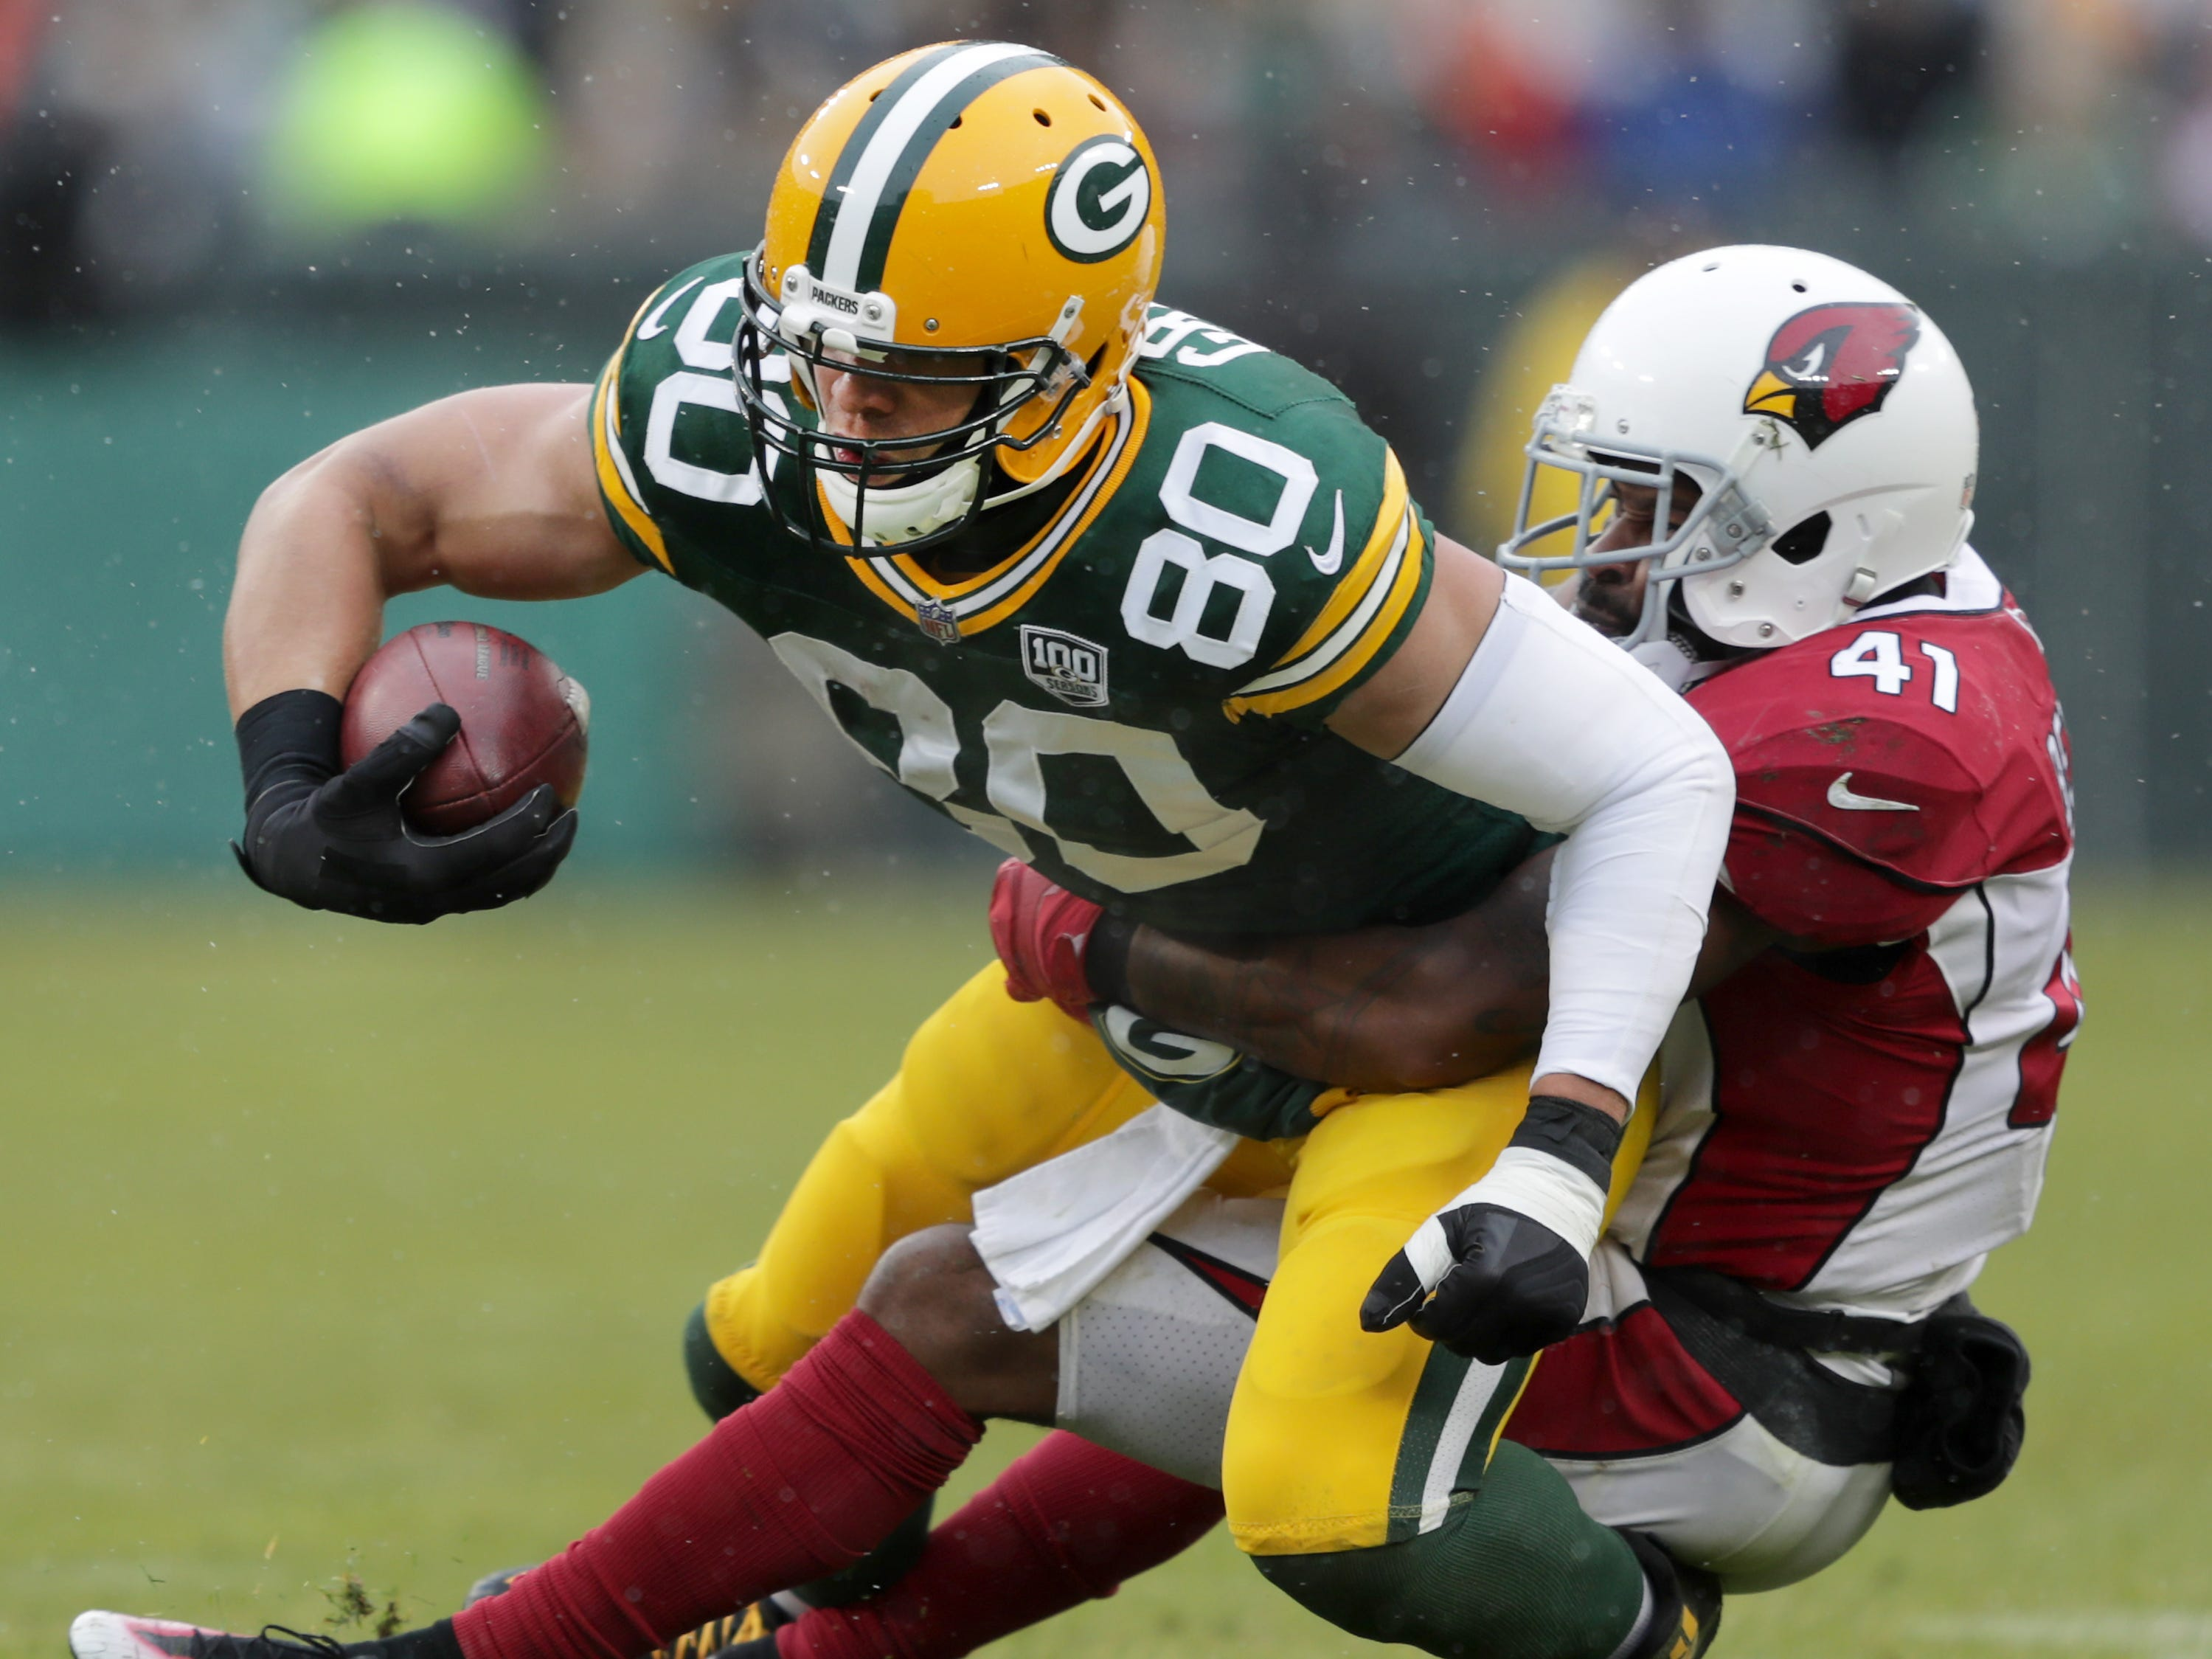 Green Bay Packers tight end Jimmy Graham is tackled by Arizona Cardinals free safety Antoine Bethea during their football game on Sunday, December 2, 2018, at Lambeau Field in Green Bay, Wis. Wm. Glasheen/USA TODAY NETWORK-Wisconsin.